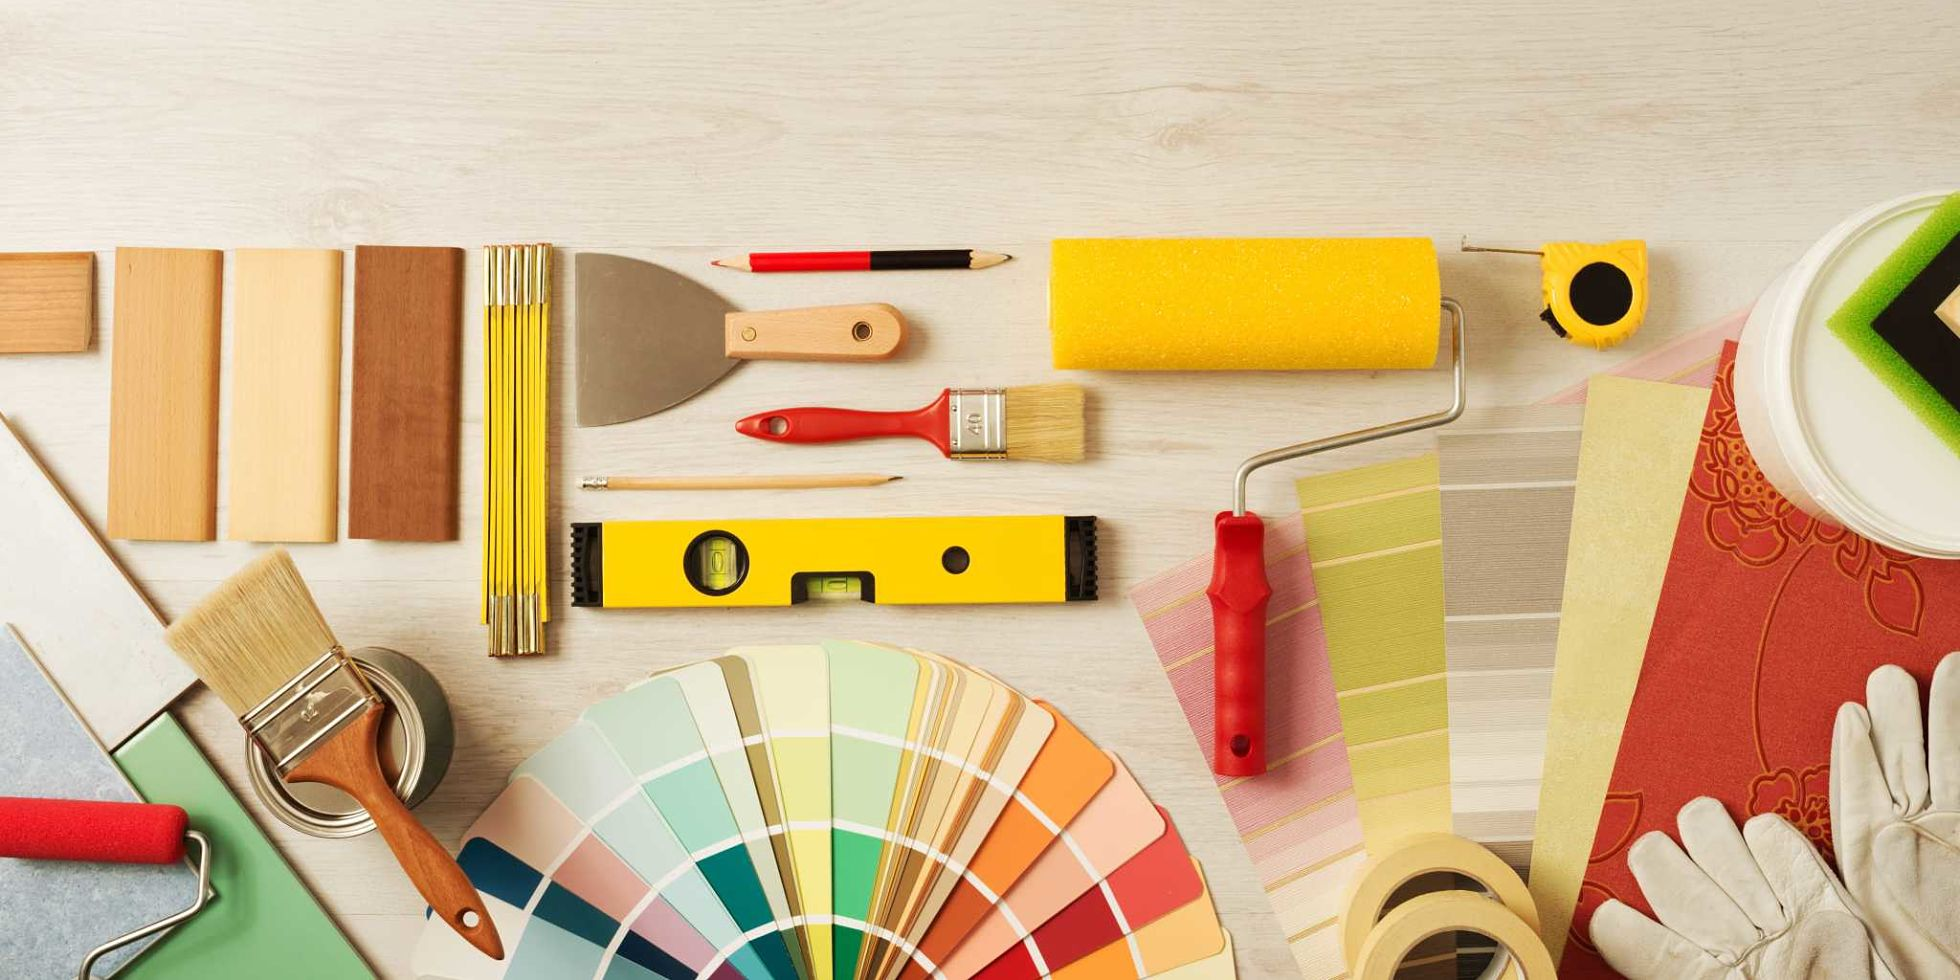 The Team creative brand and communications agency_How to DIY employer brand